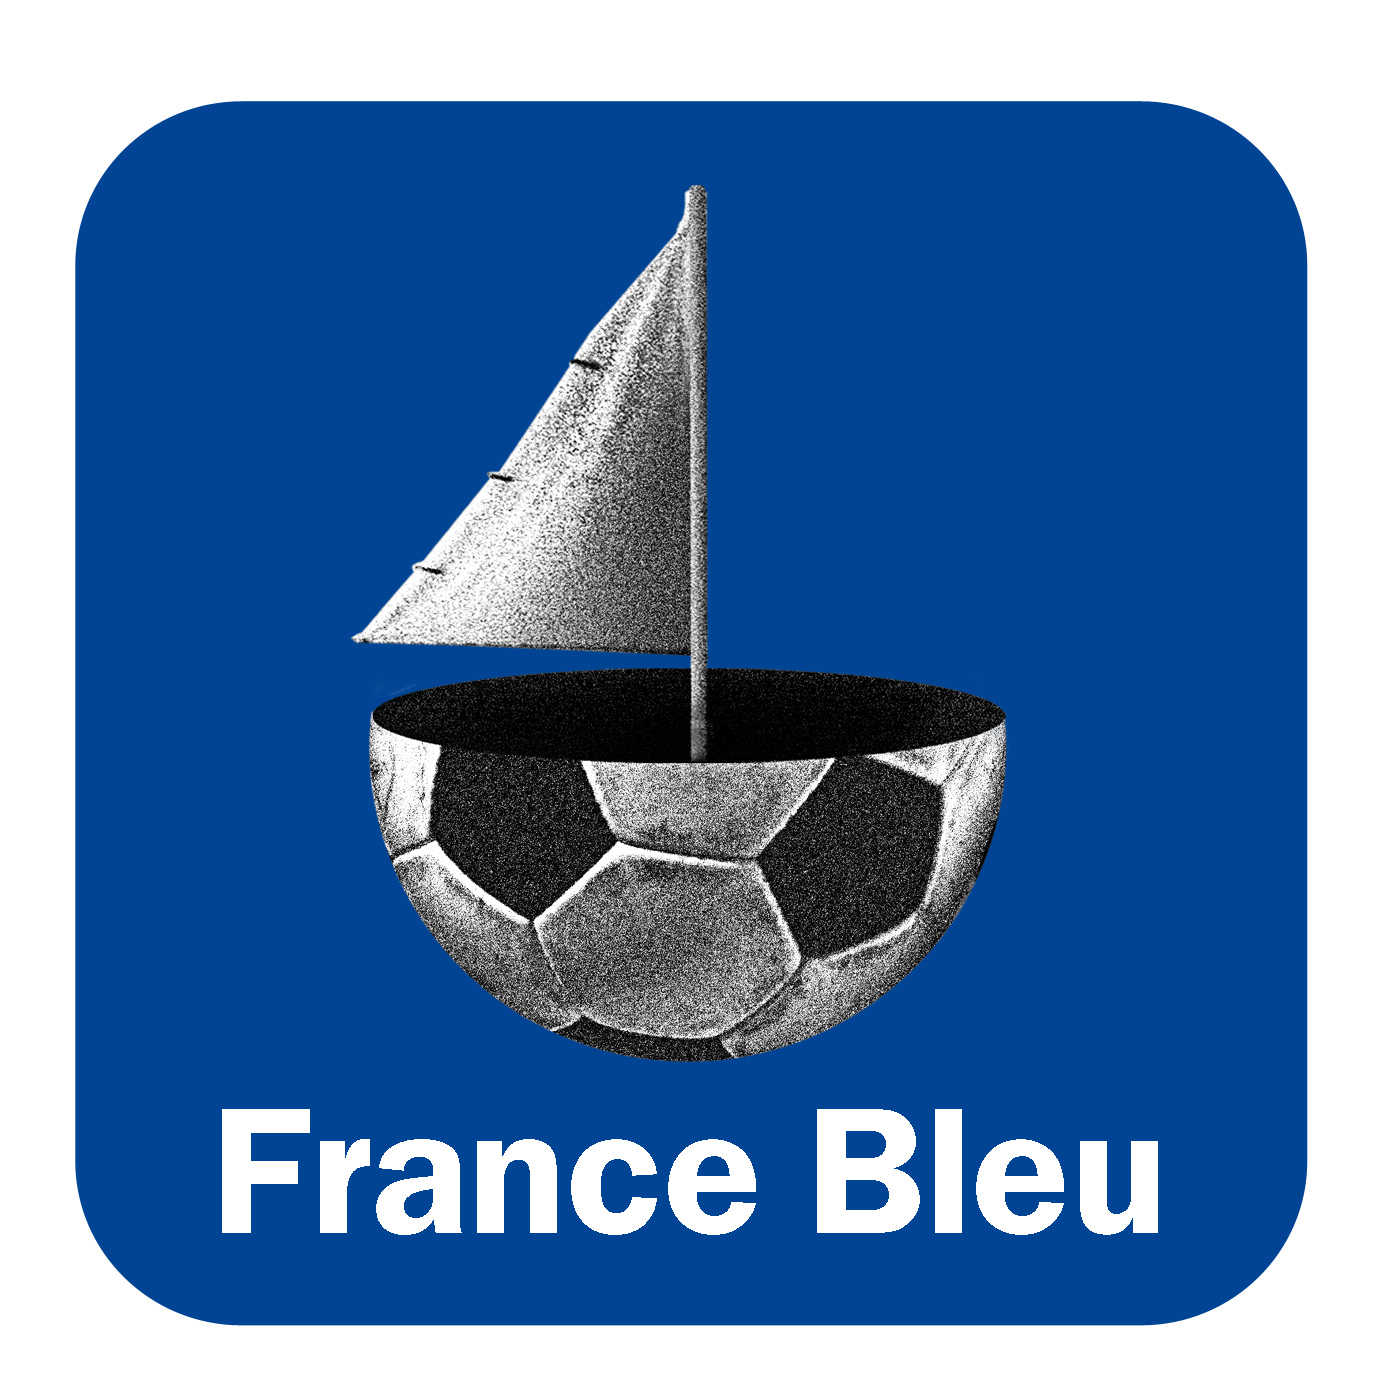 Le Club Sers France Bleu Hérault